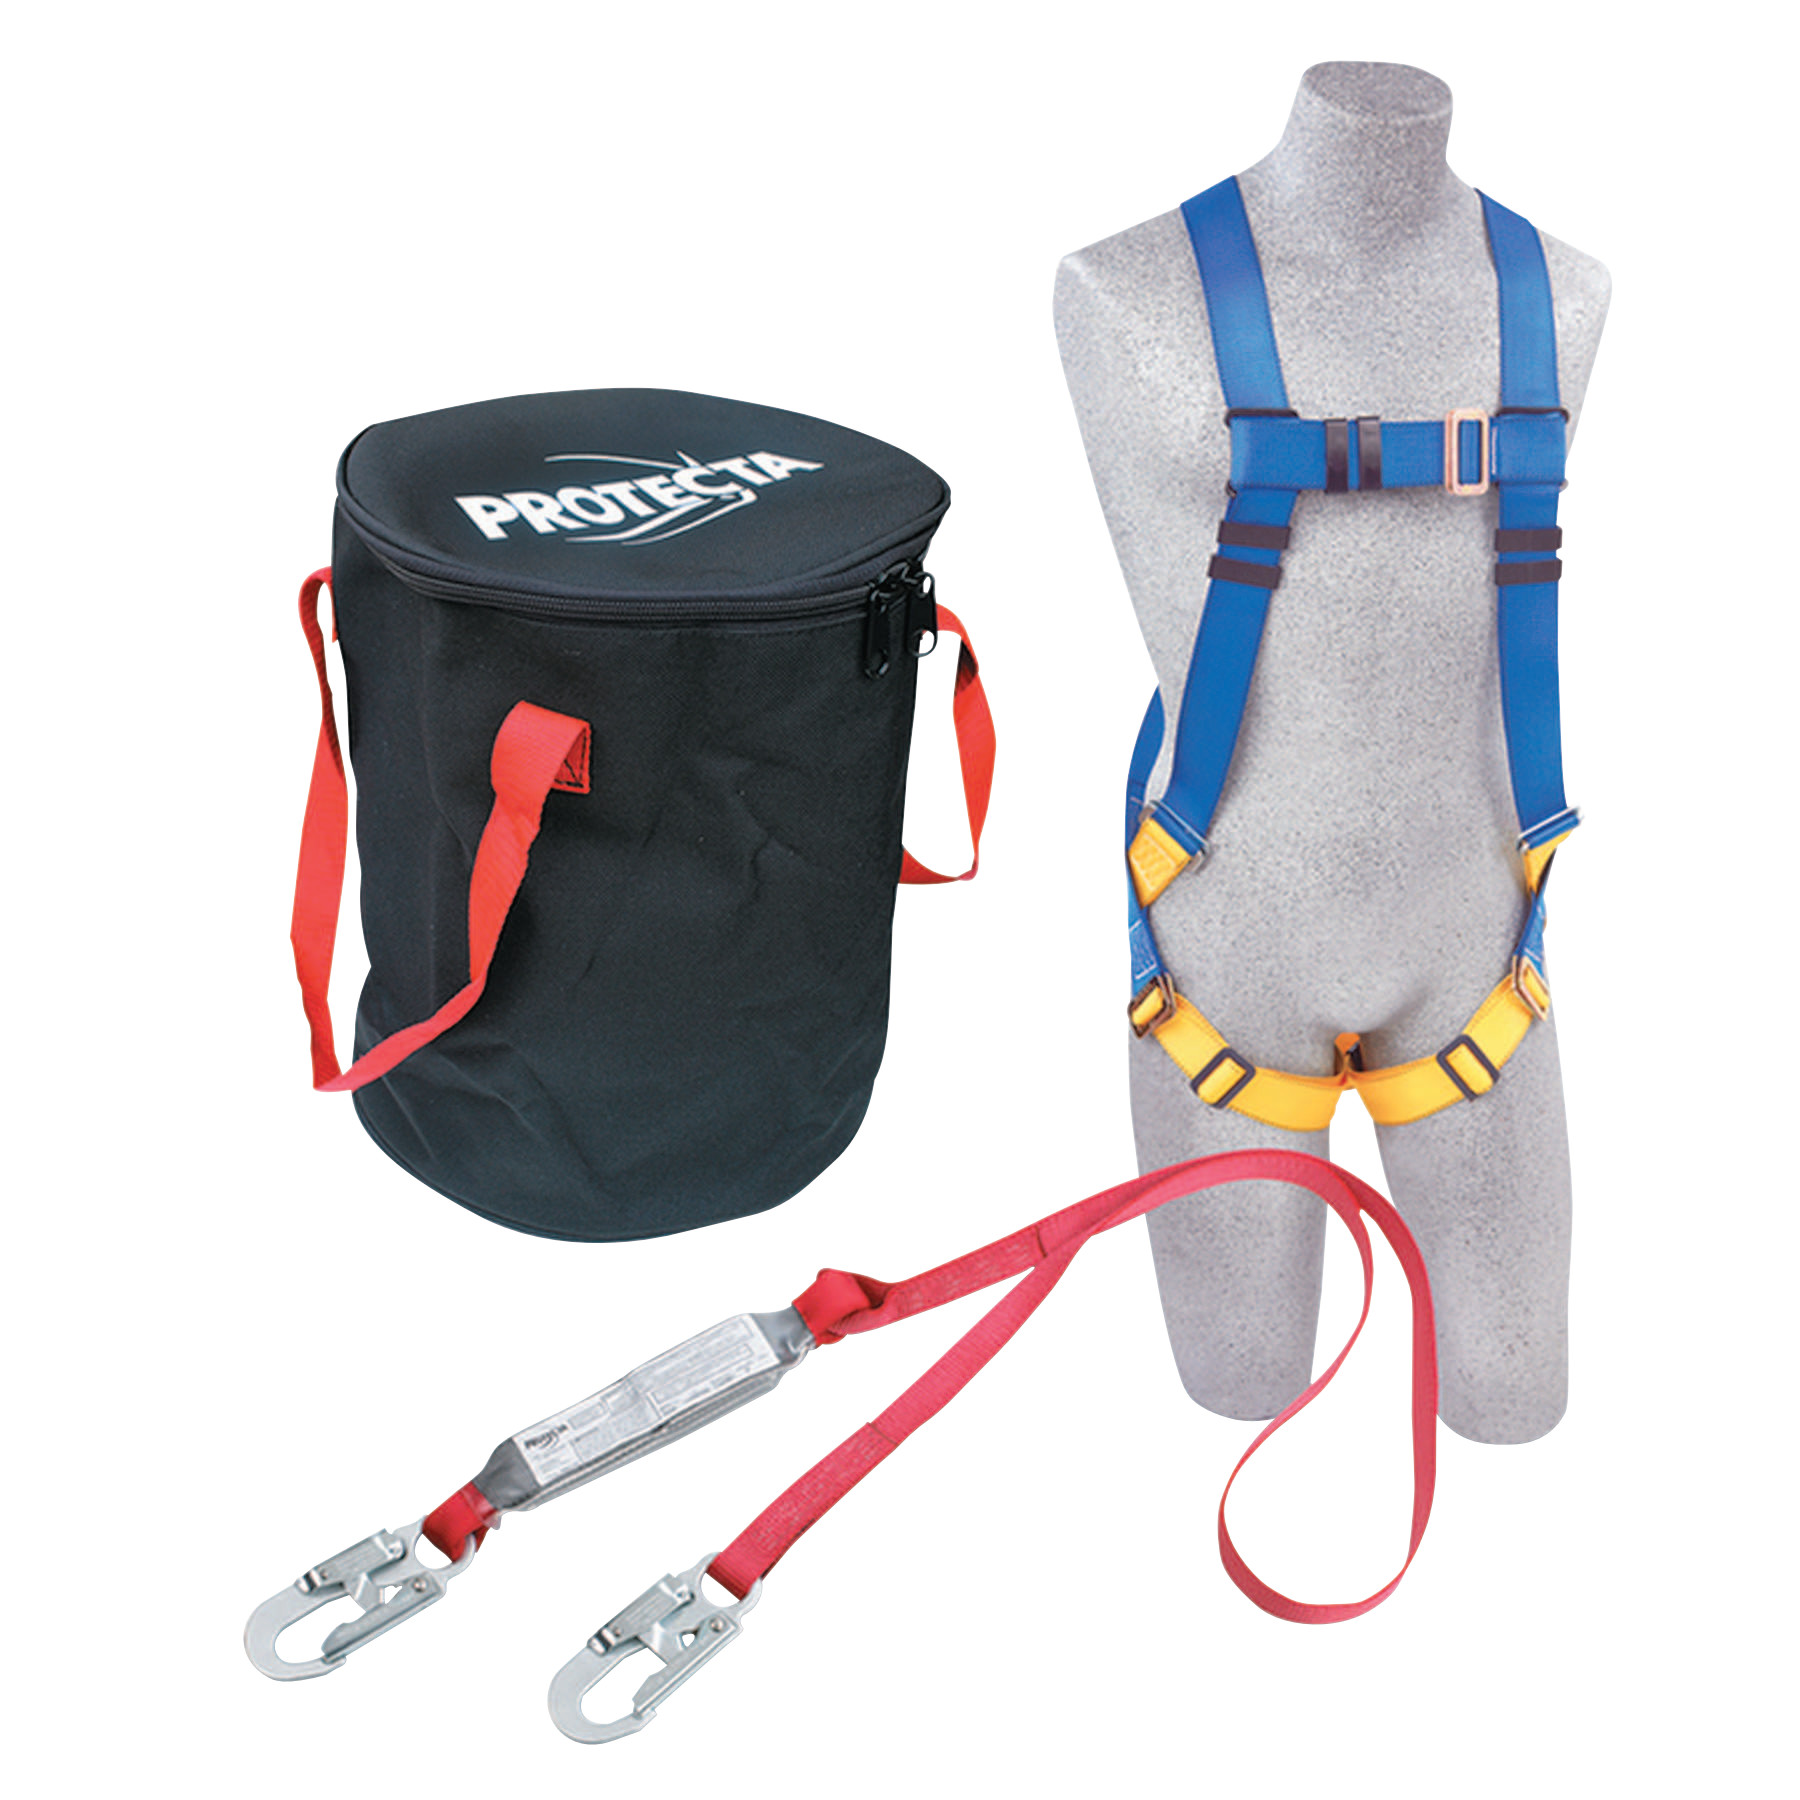 DBI-SALA Protecta Compliance-In-A-Can Roofer's Fall Protection Kit, Harness; Anchorage